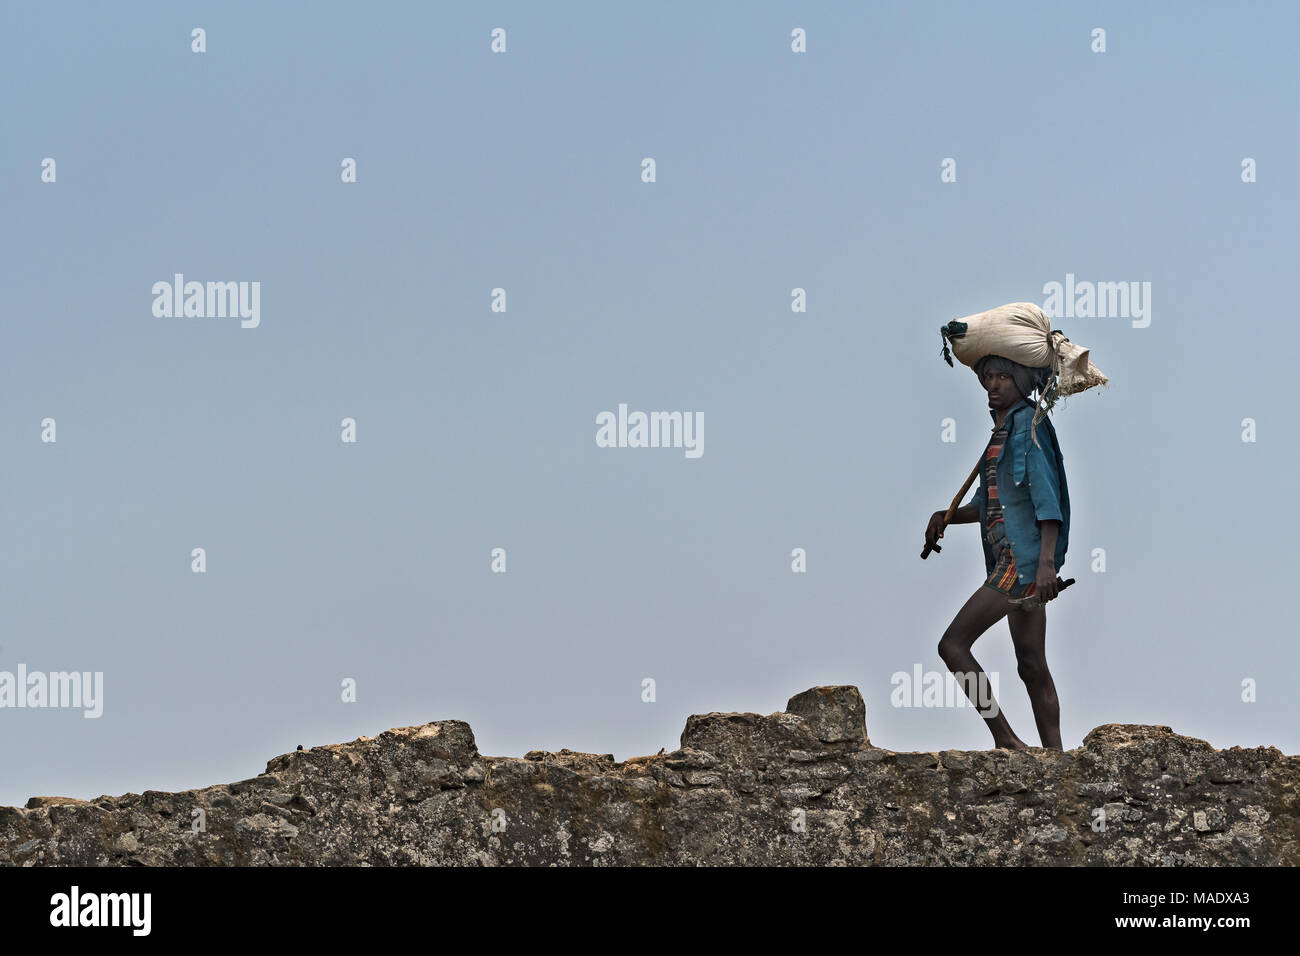 Ethiopian people crossing a stone bridge, Debre Libanos, Ethiopia - Stock Image